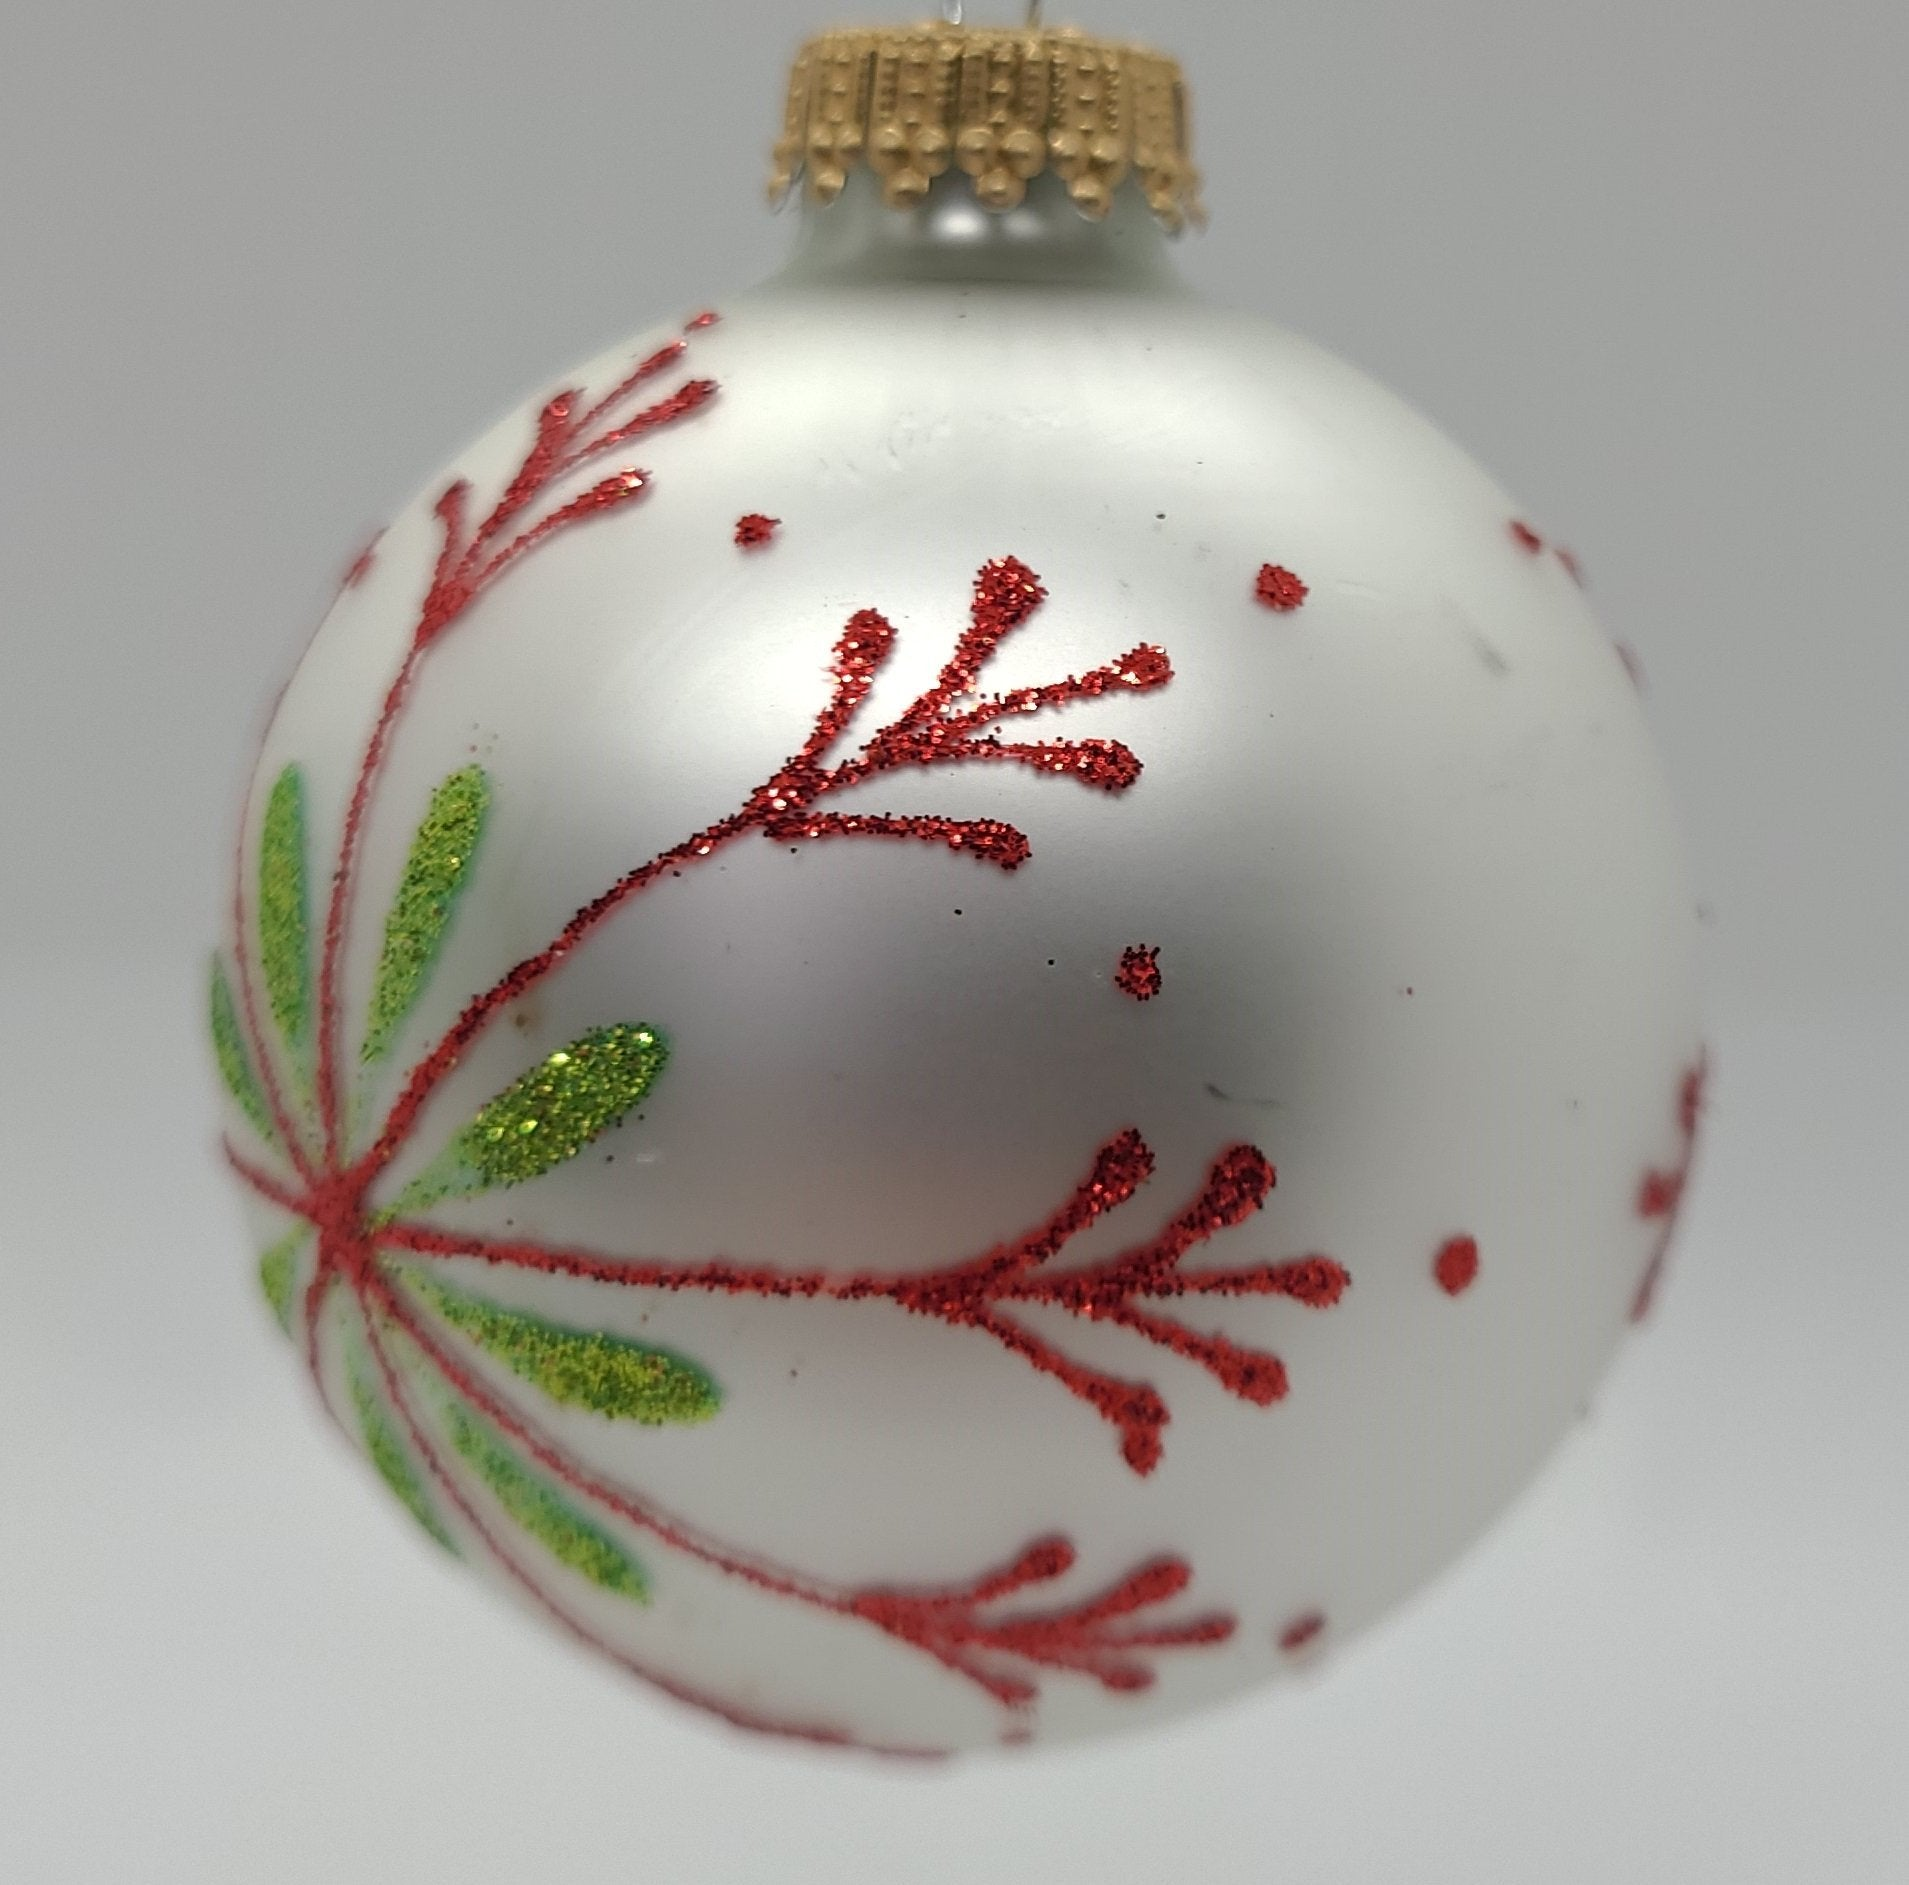 "Glass Classic 3"" Porcelain White Bauble with With Red Snowflake and Green Accents Ornament - Schmidt Christmas Market Christmas Decoration"